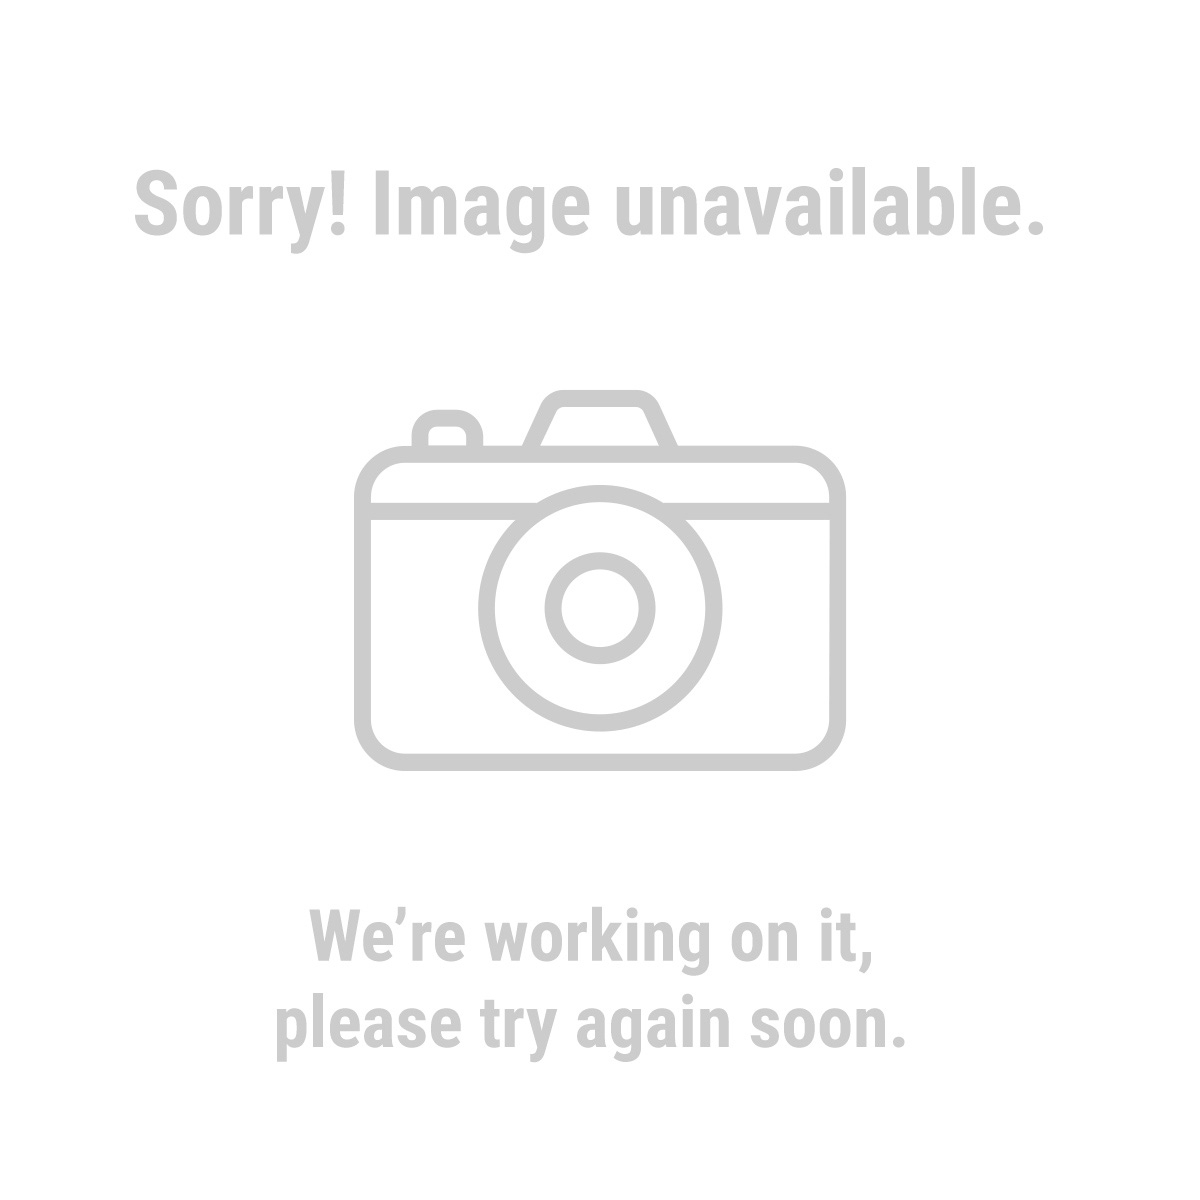 12 in. Stainless Steel Cable Ties 25 Pk.